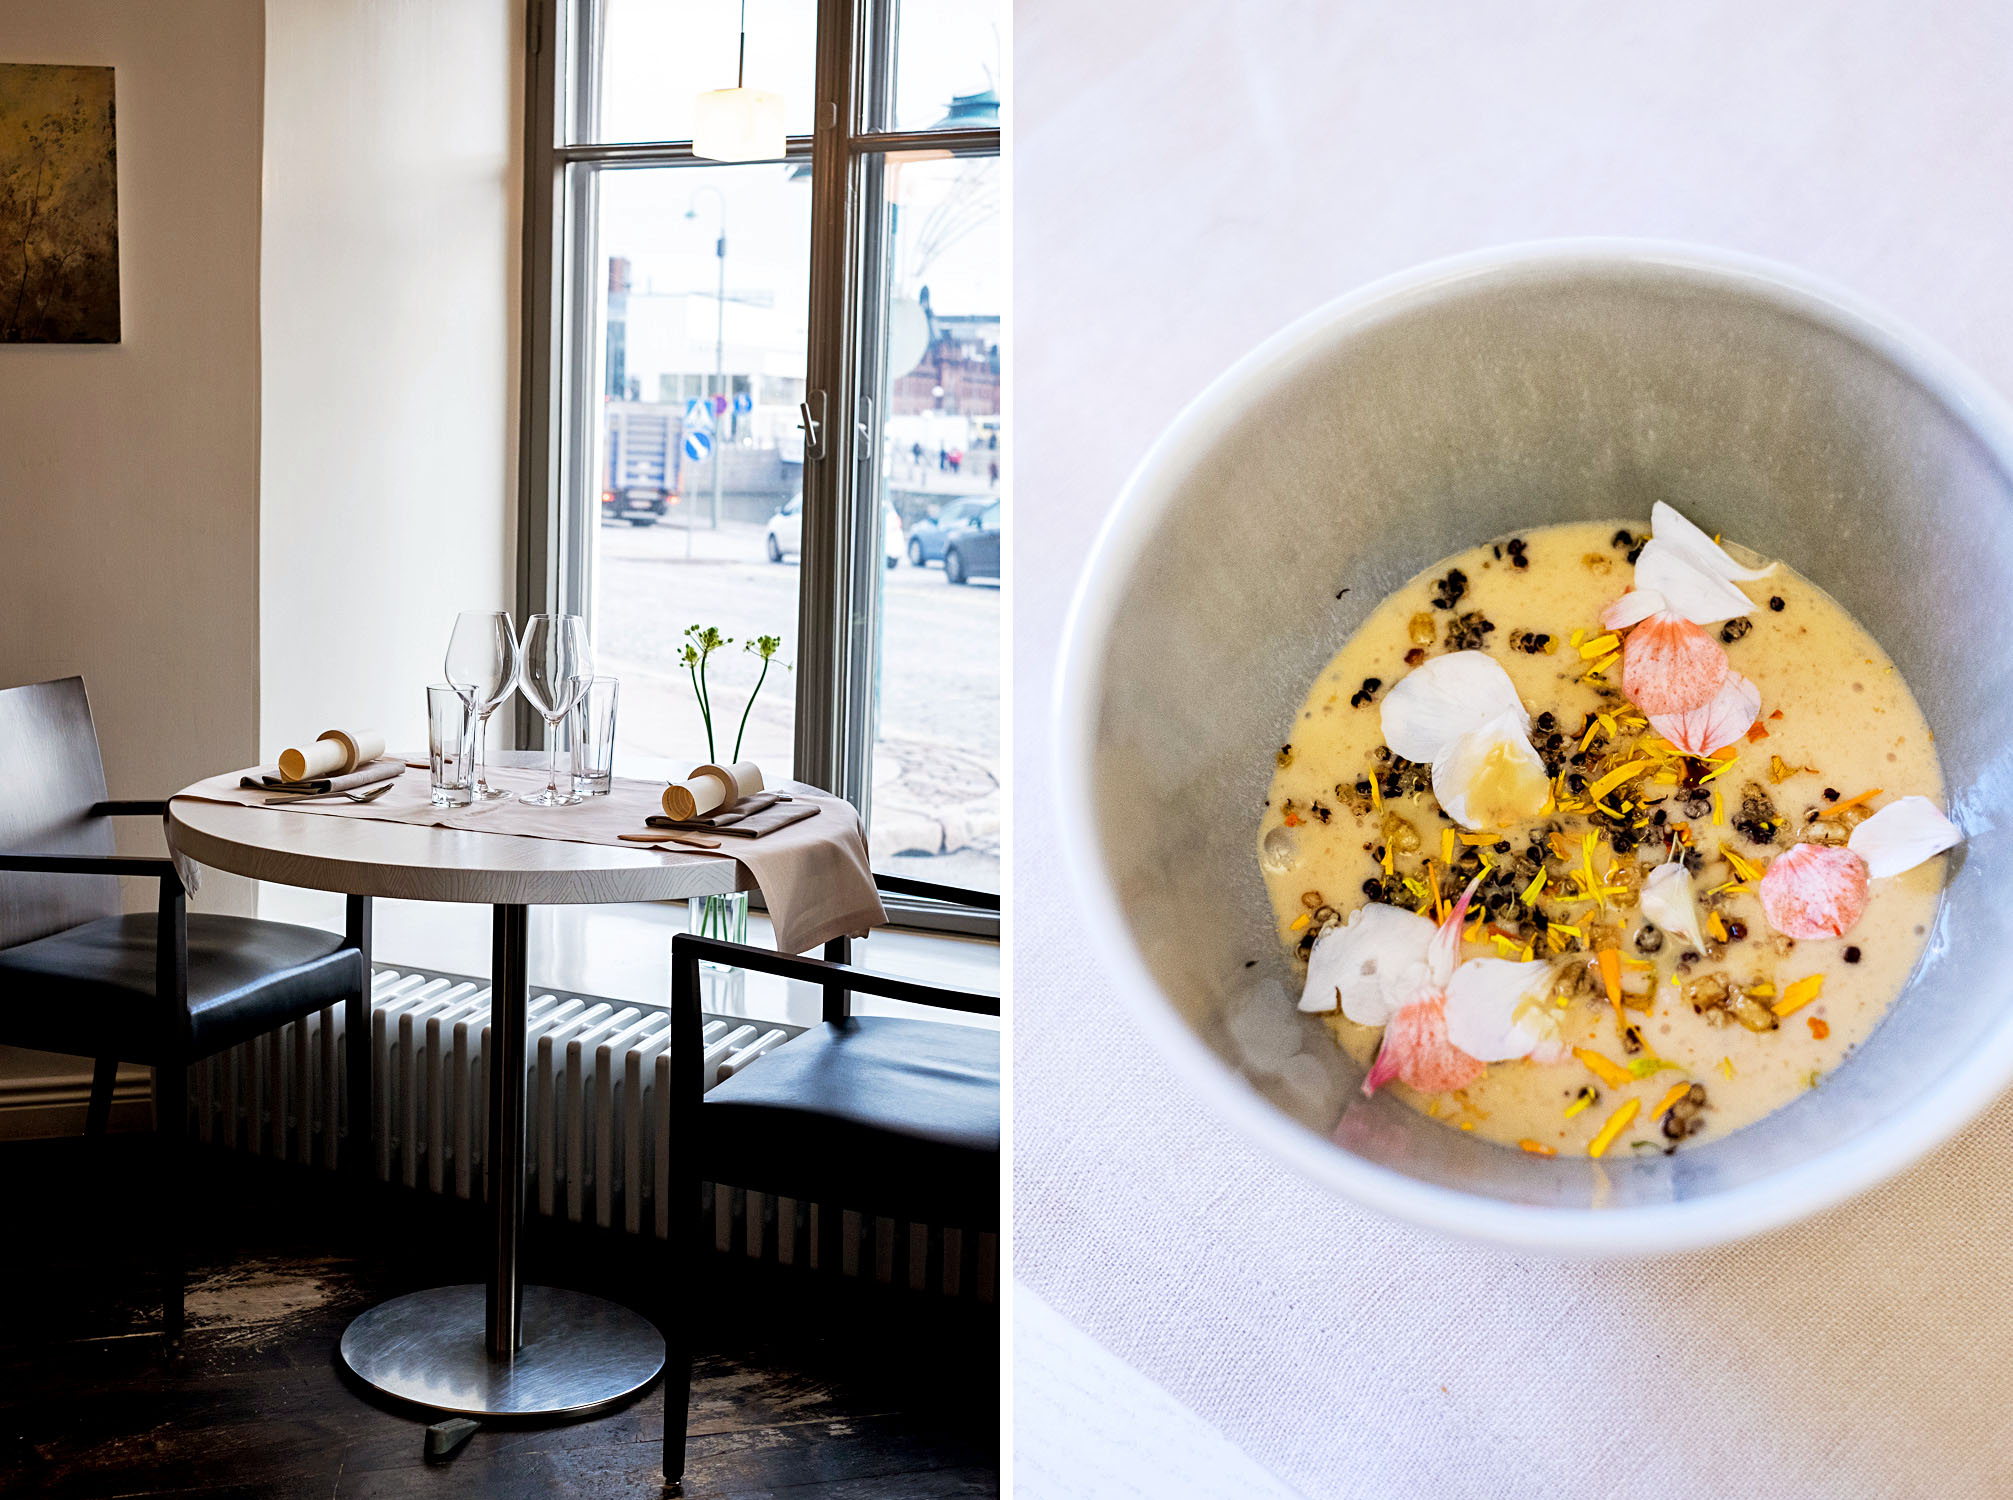 Lunch at Michelin-starred restaurant OLO / Where to Eat in Helsinki: A Two-Day City Guide to The Finnish Capital